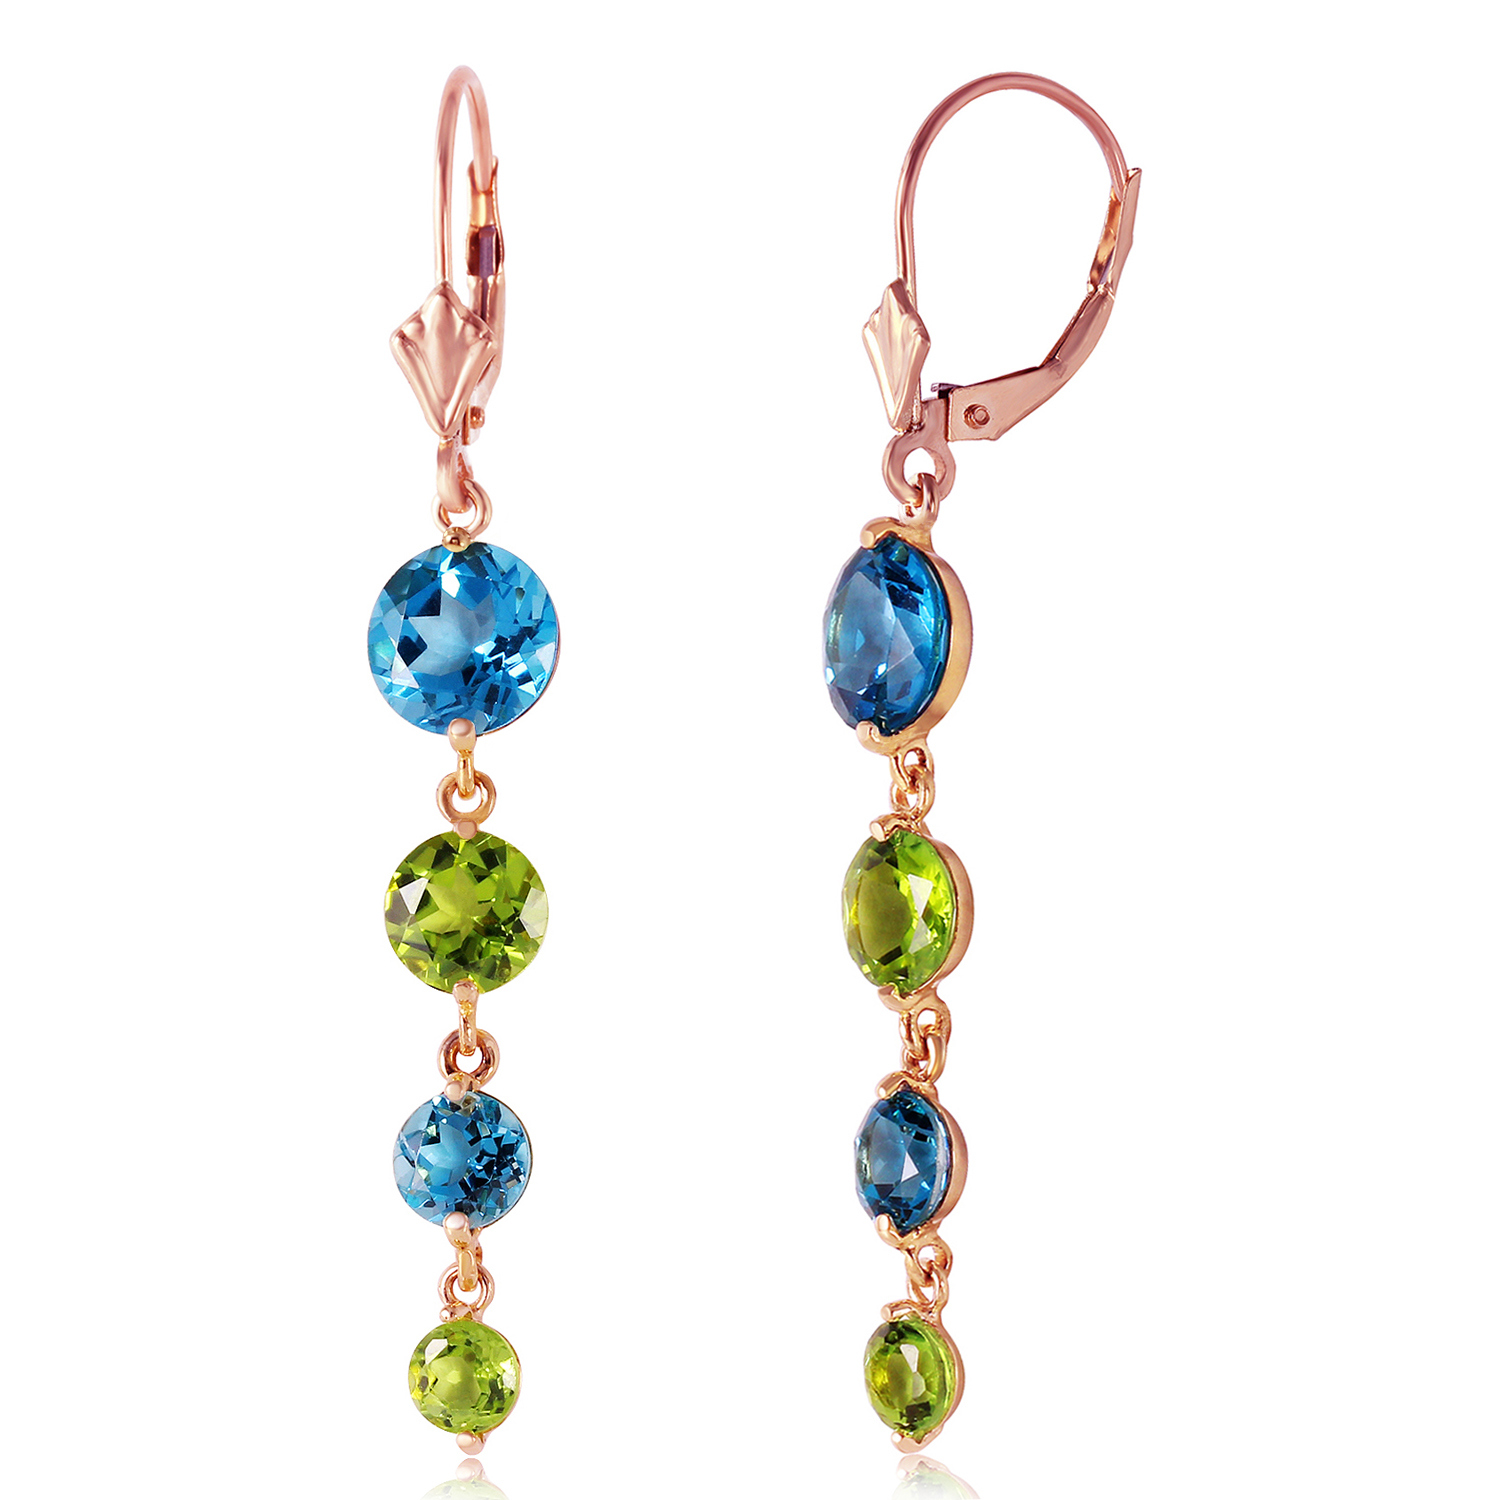 14K Solid Rose Gold Chandelier Earrings with Blue Topaz & Peridot